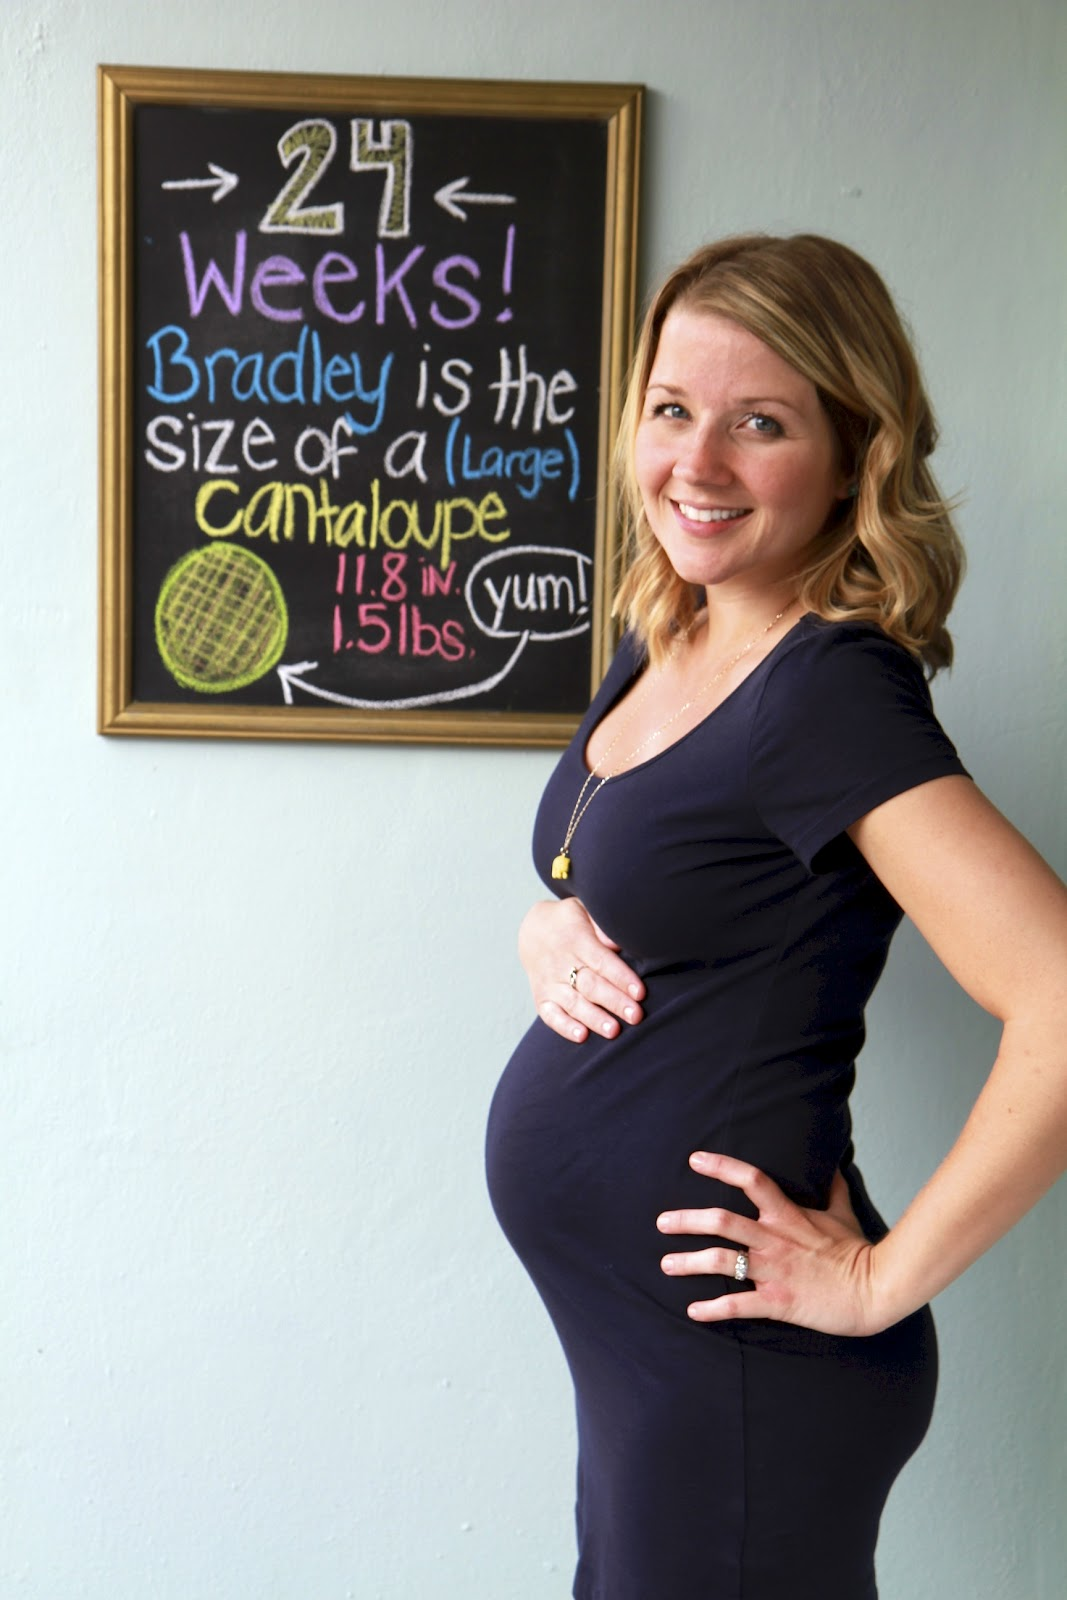 Images of 40 Weeks Pregnant With Triplets - #rock-cafe